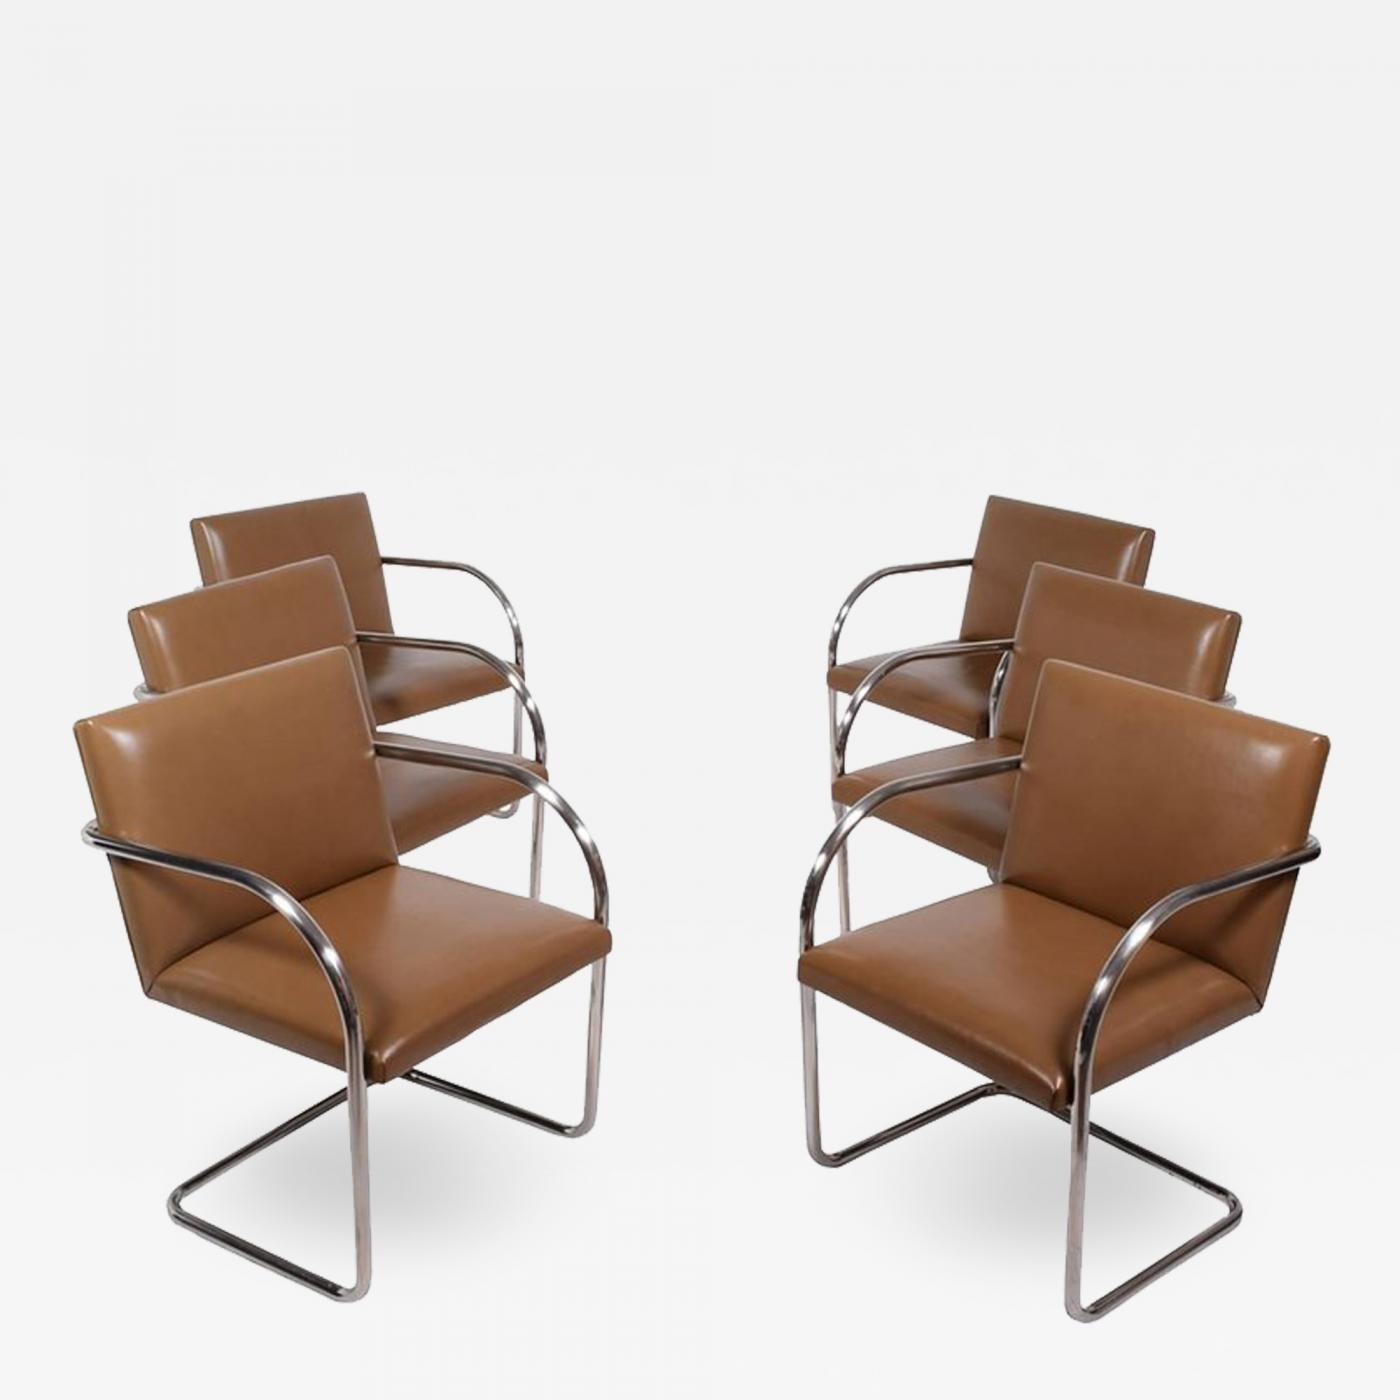 Ludwig Mies Van Der Rohe Set Of Six Brno Chairs By Mies Van Der Rohe For